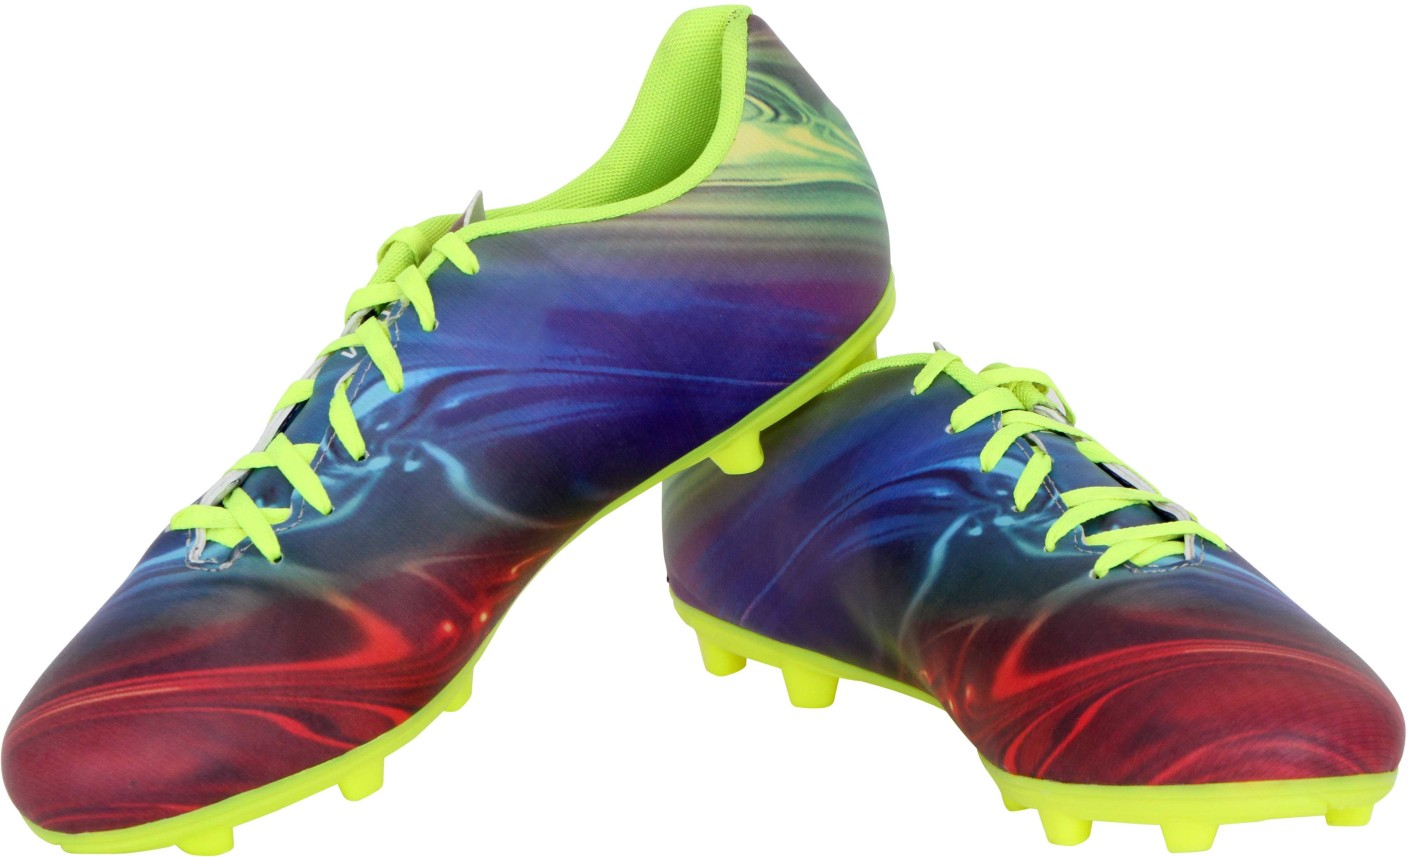 Buy Football Shoes Online Cash On Delivery